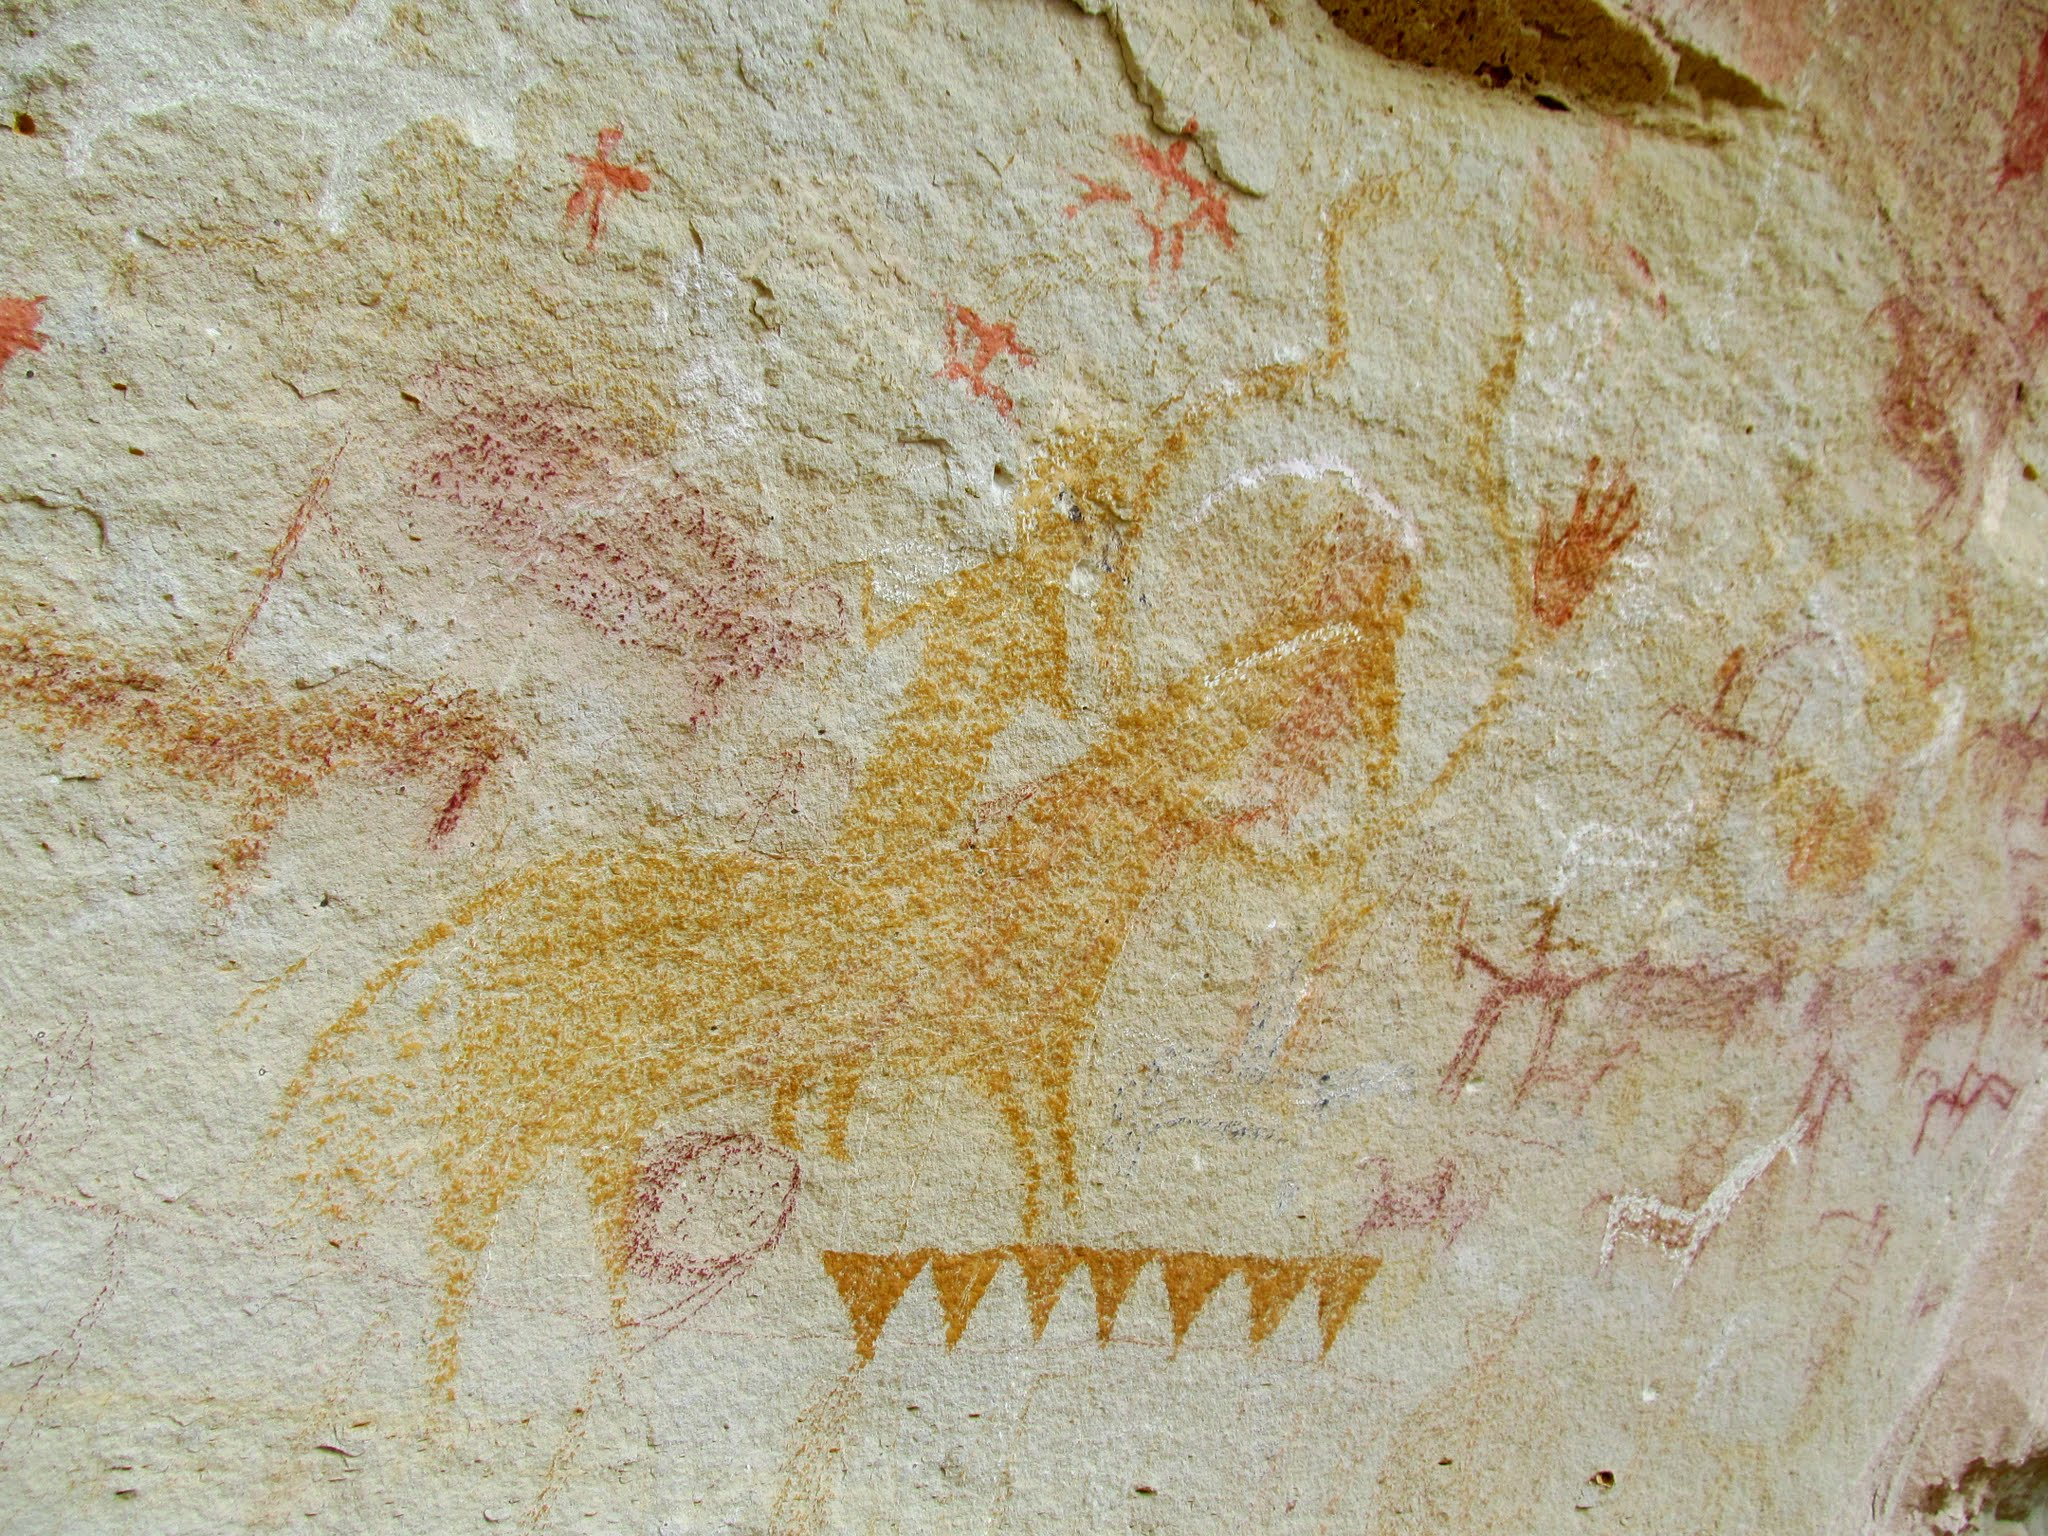 Photo: Rad Ute pictographs